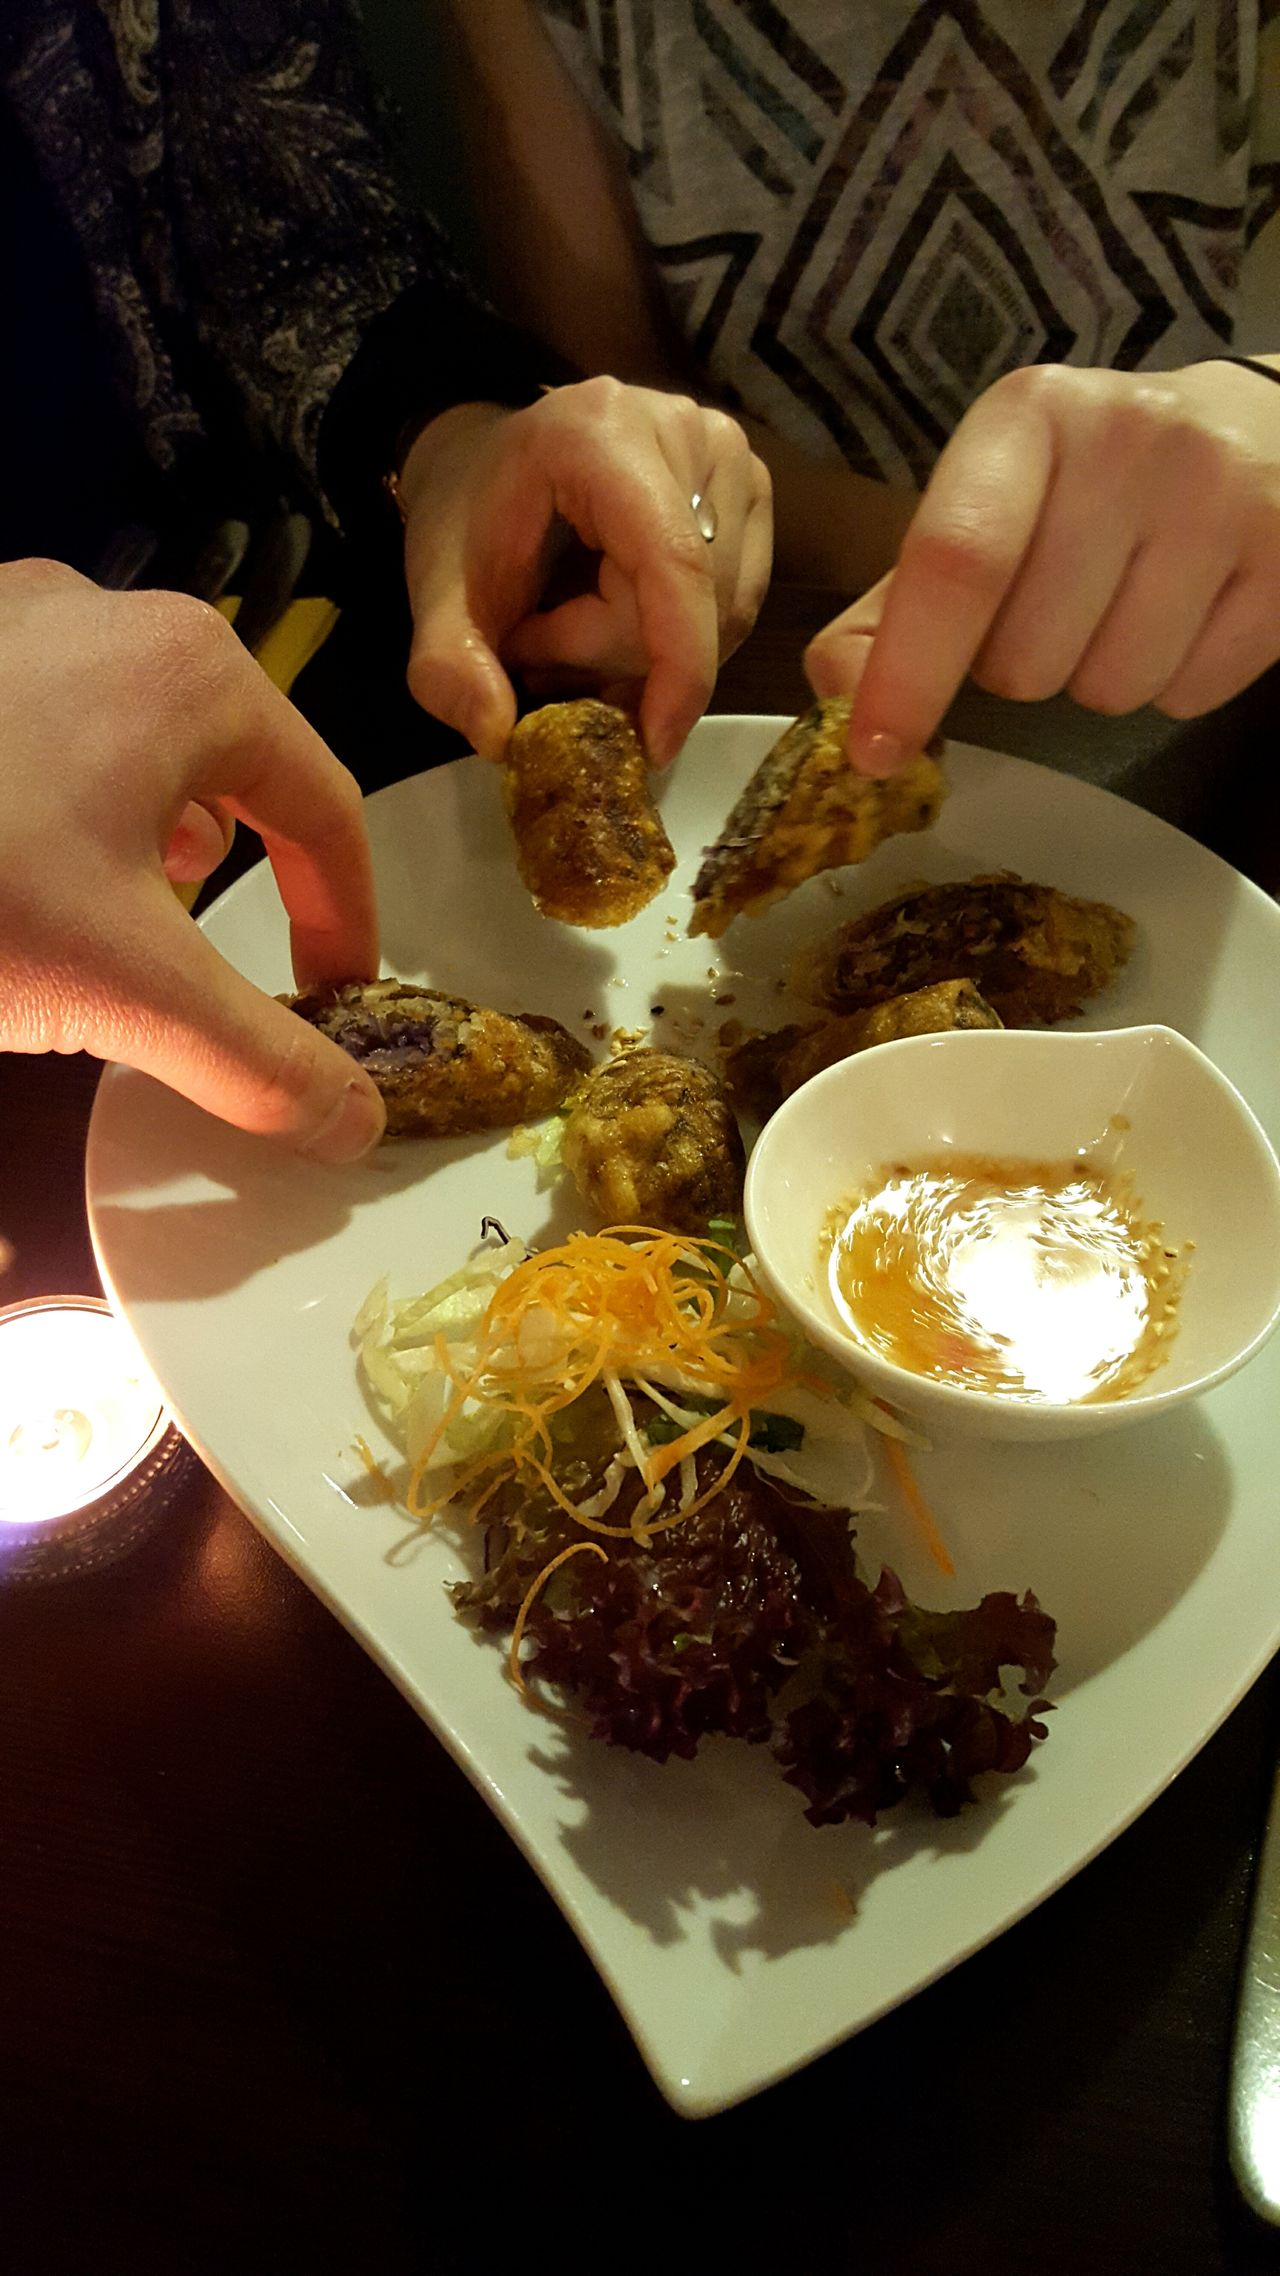 Day 13:Eating Food Foodporn Eating With Friends Dinner With Friends Asianfood Vietnamese Food Hands Grab Always Be Cozy Grabbing A Bite DinnerCamera:Galaxy S6